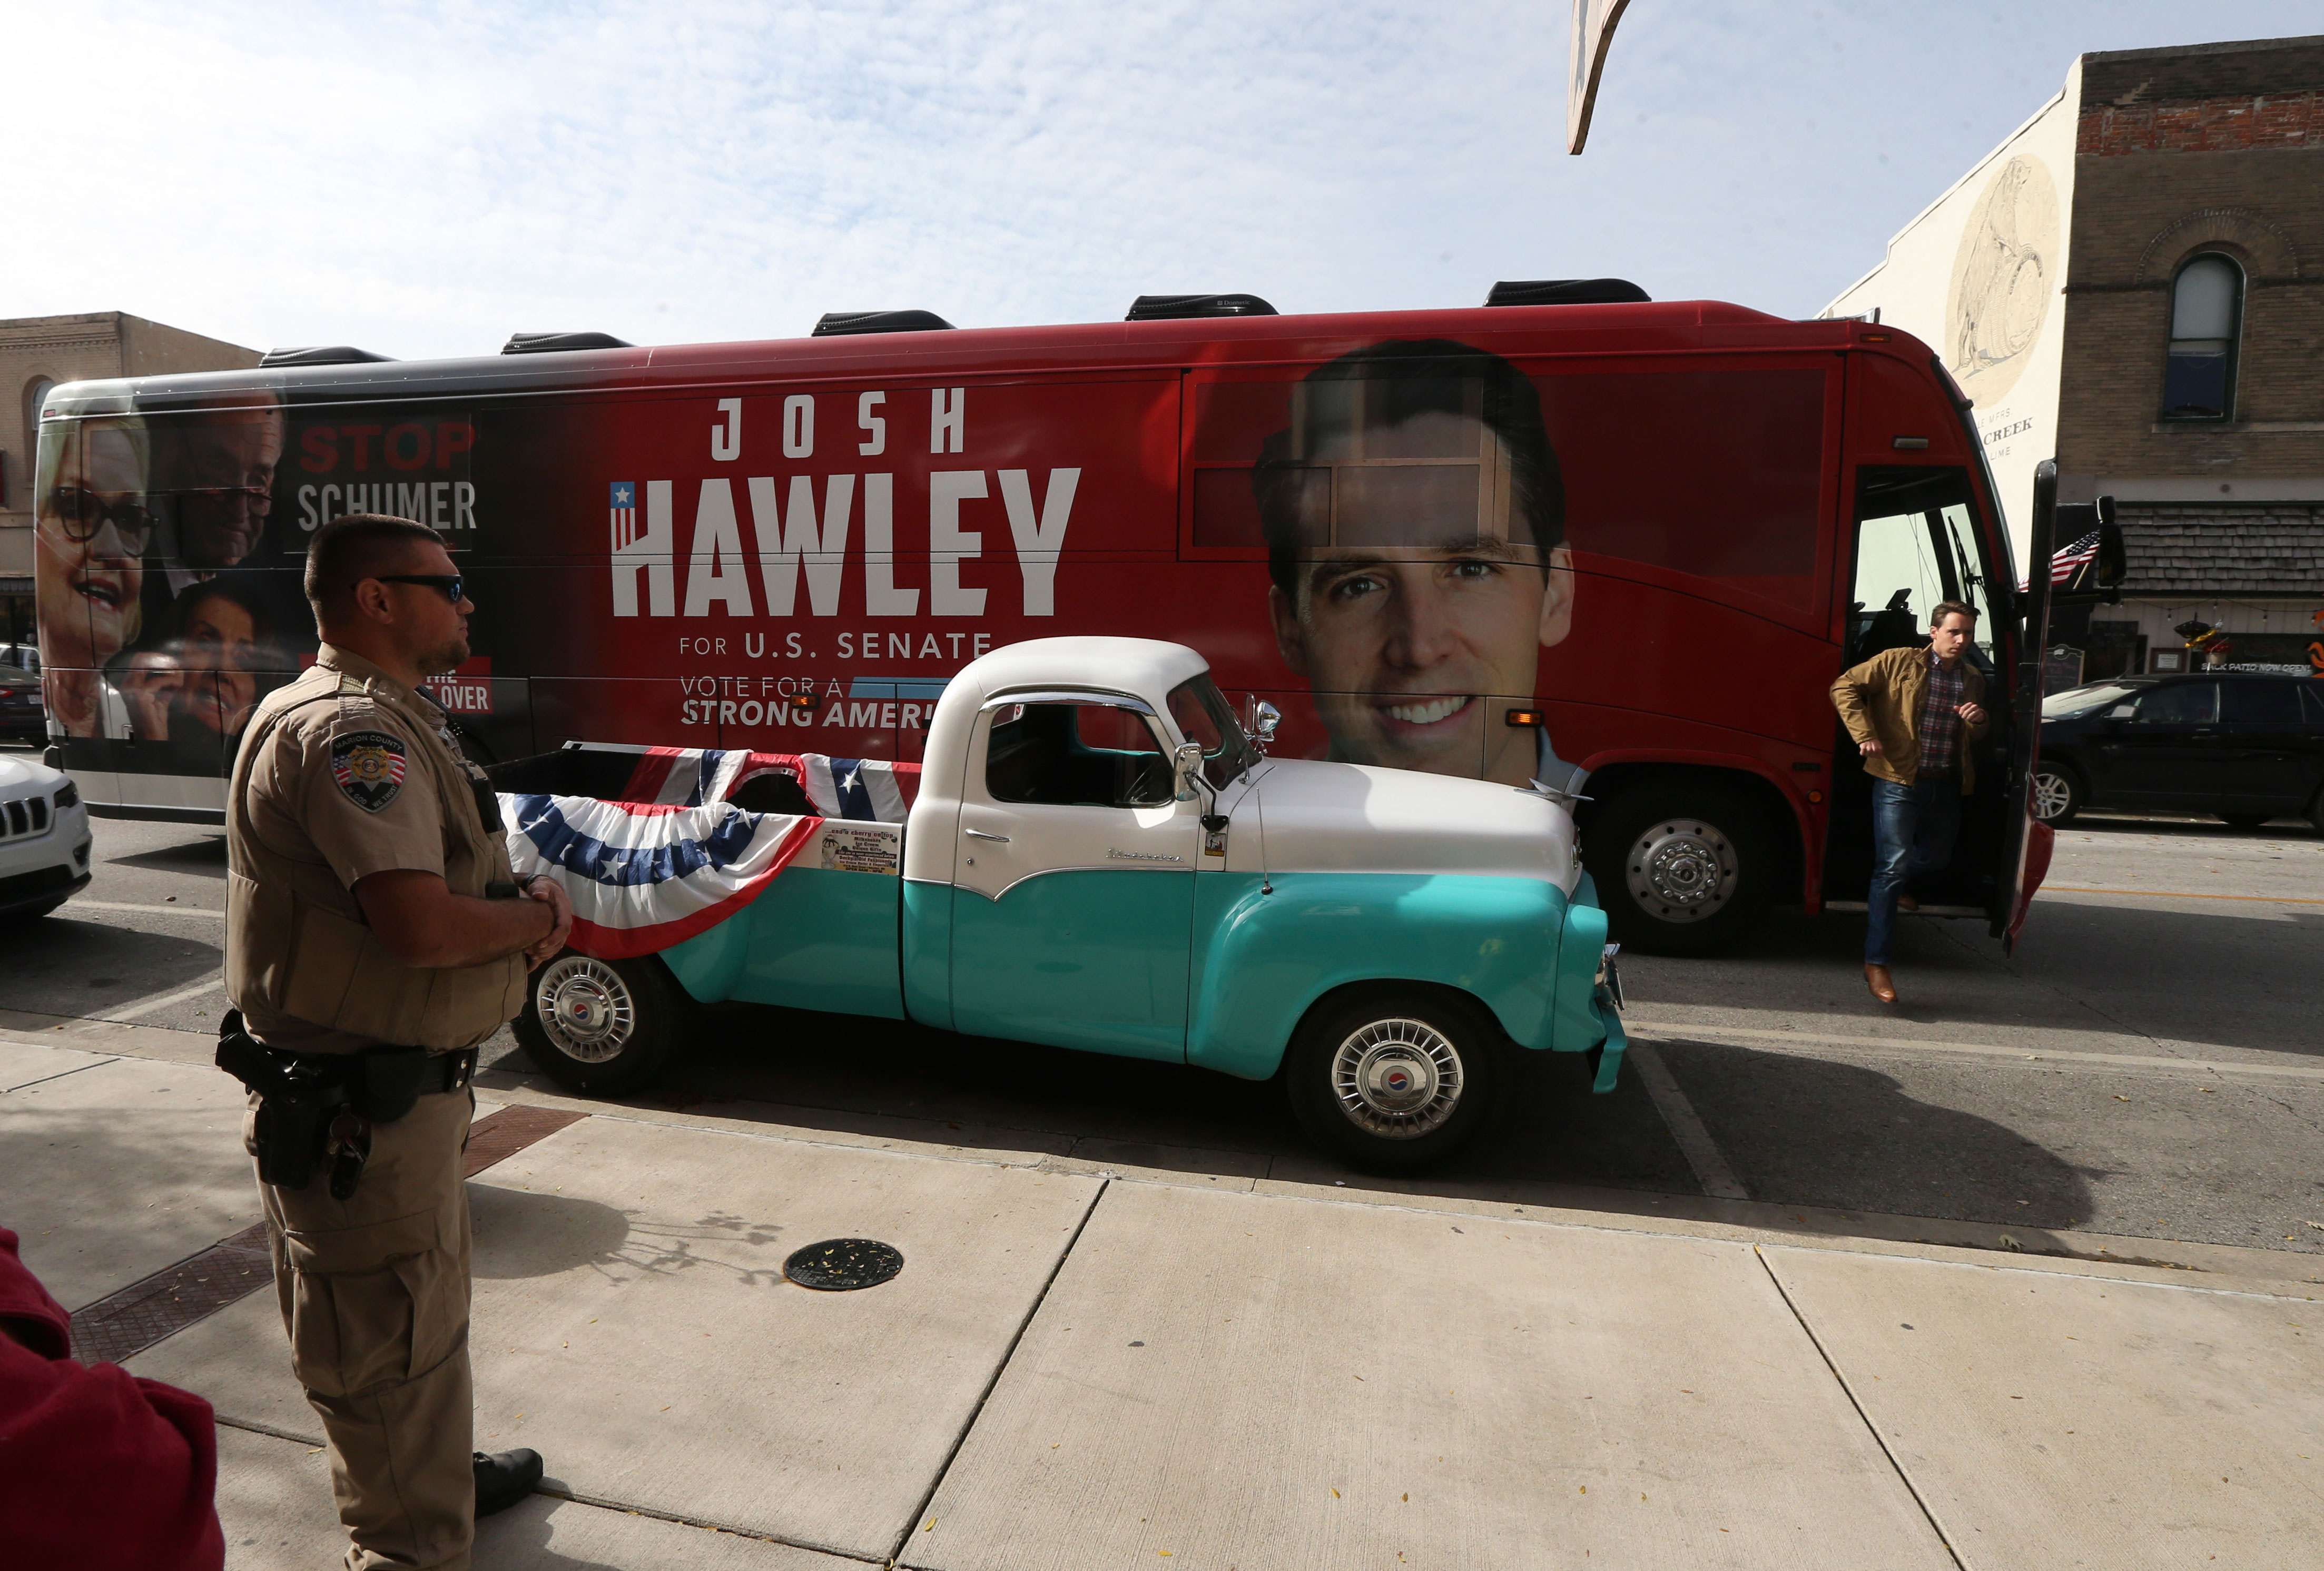 Josh Hawley Goes to Washington